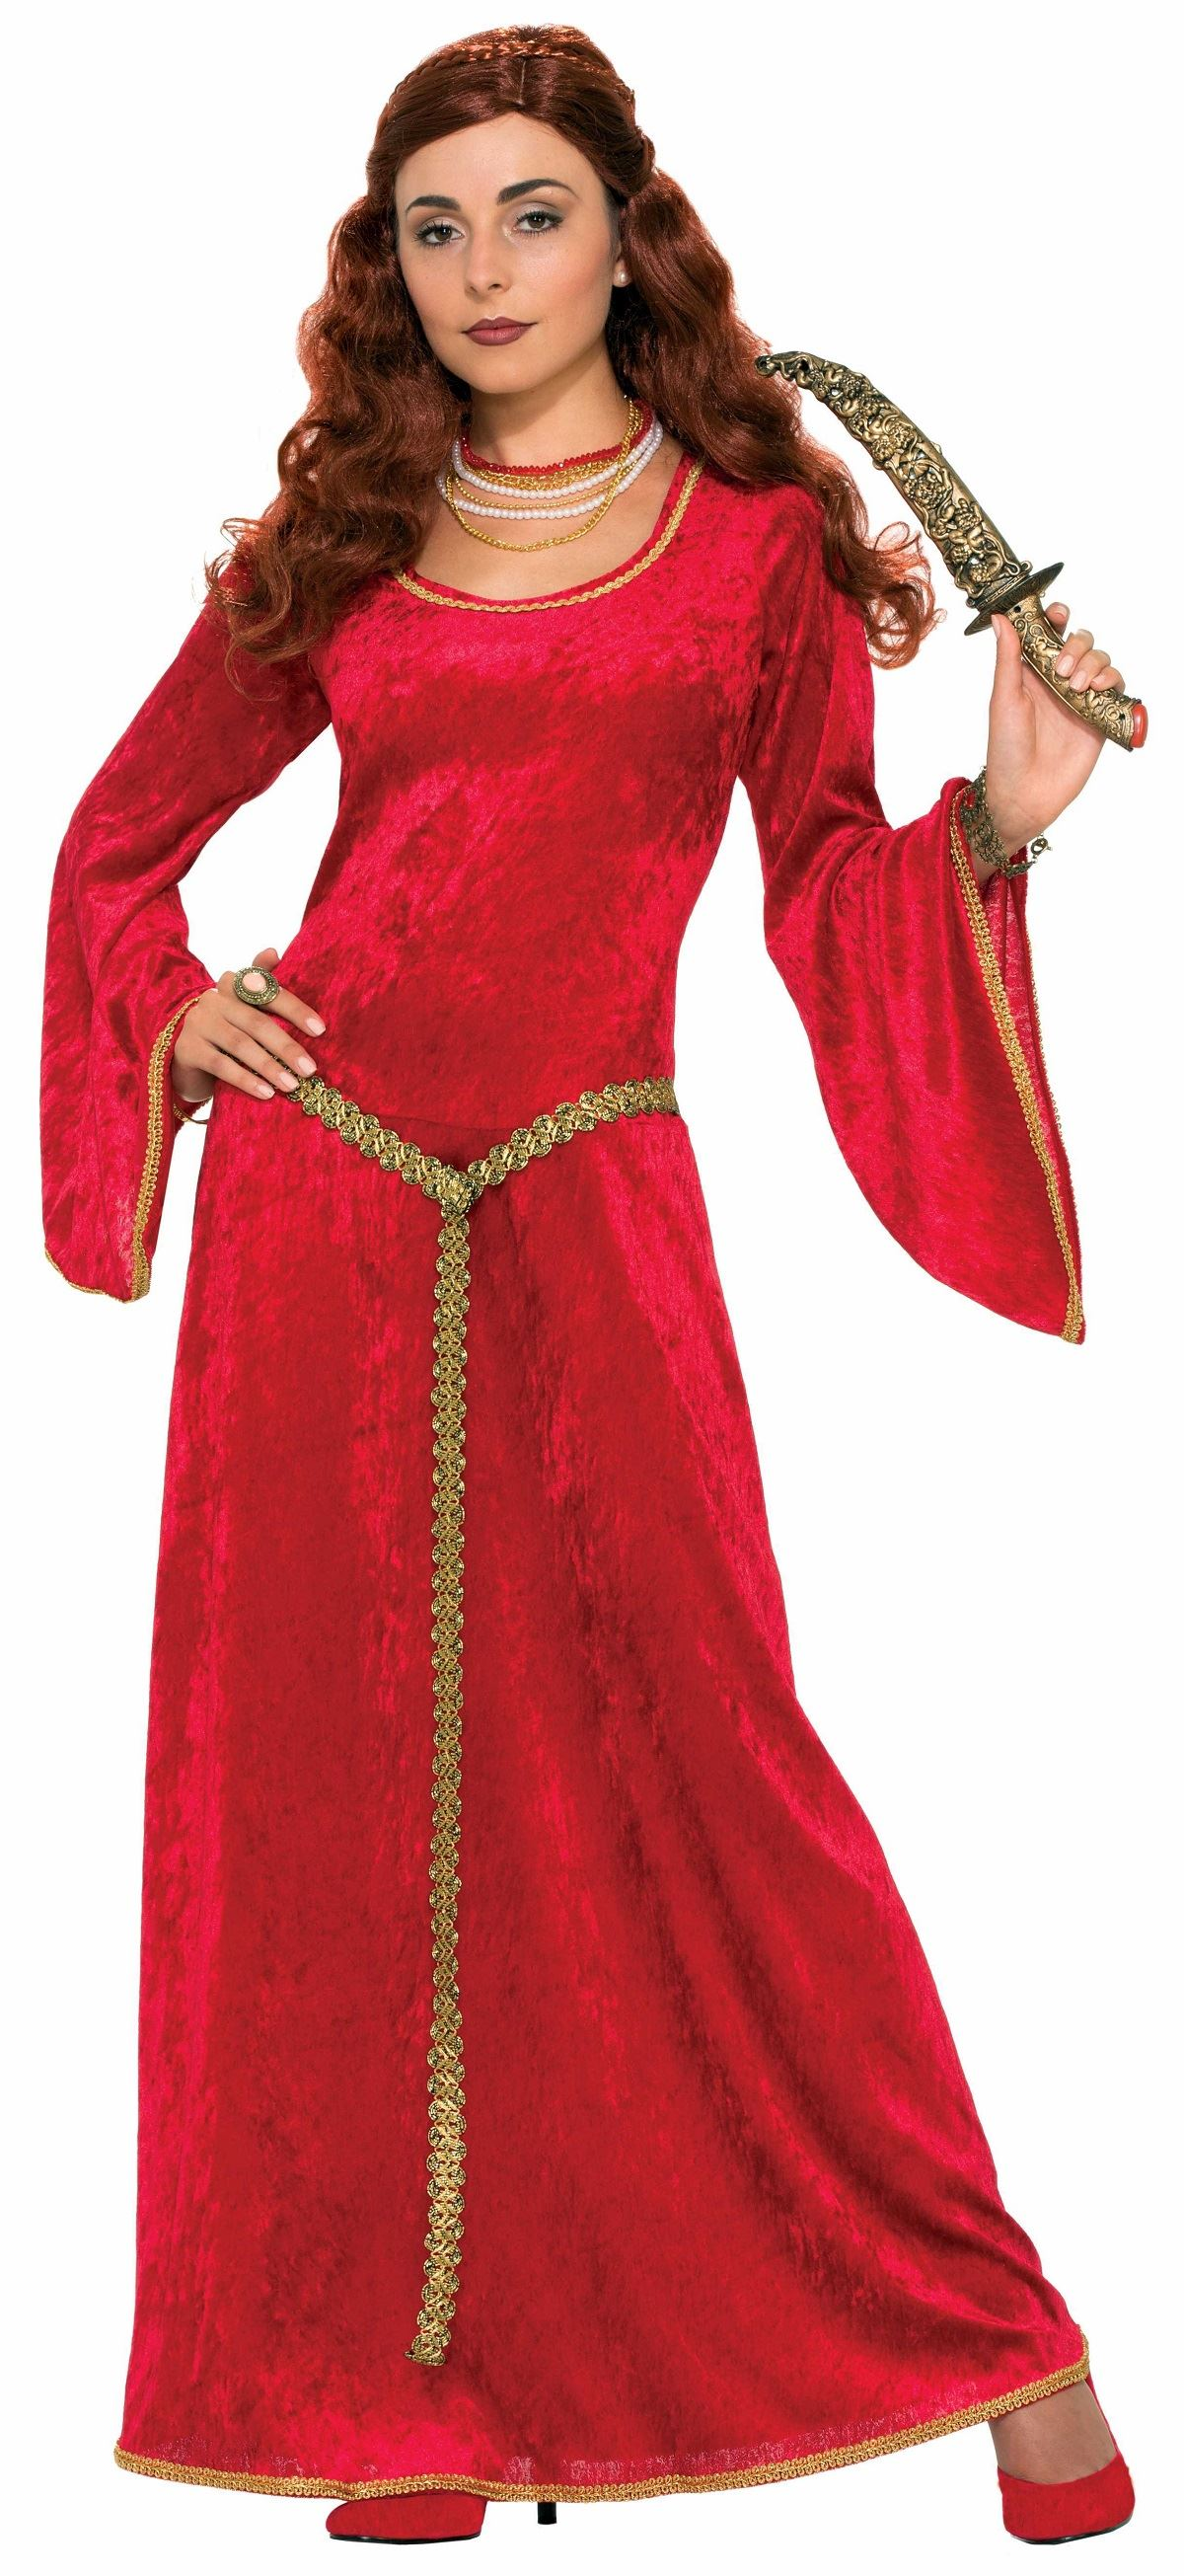 Adult Ruby Sorceress Women Medieval Costume | $31.99 | The ...